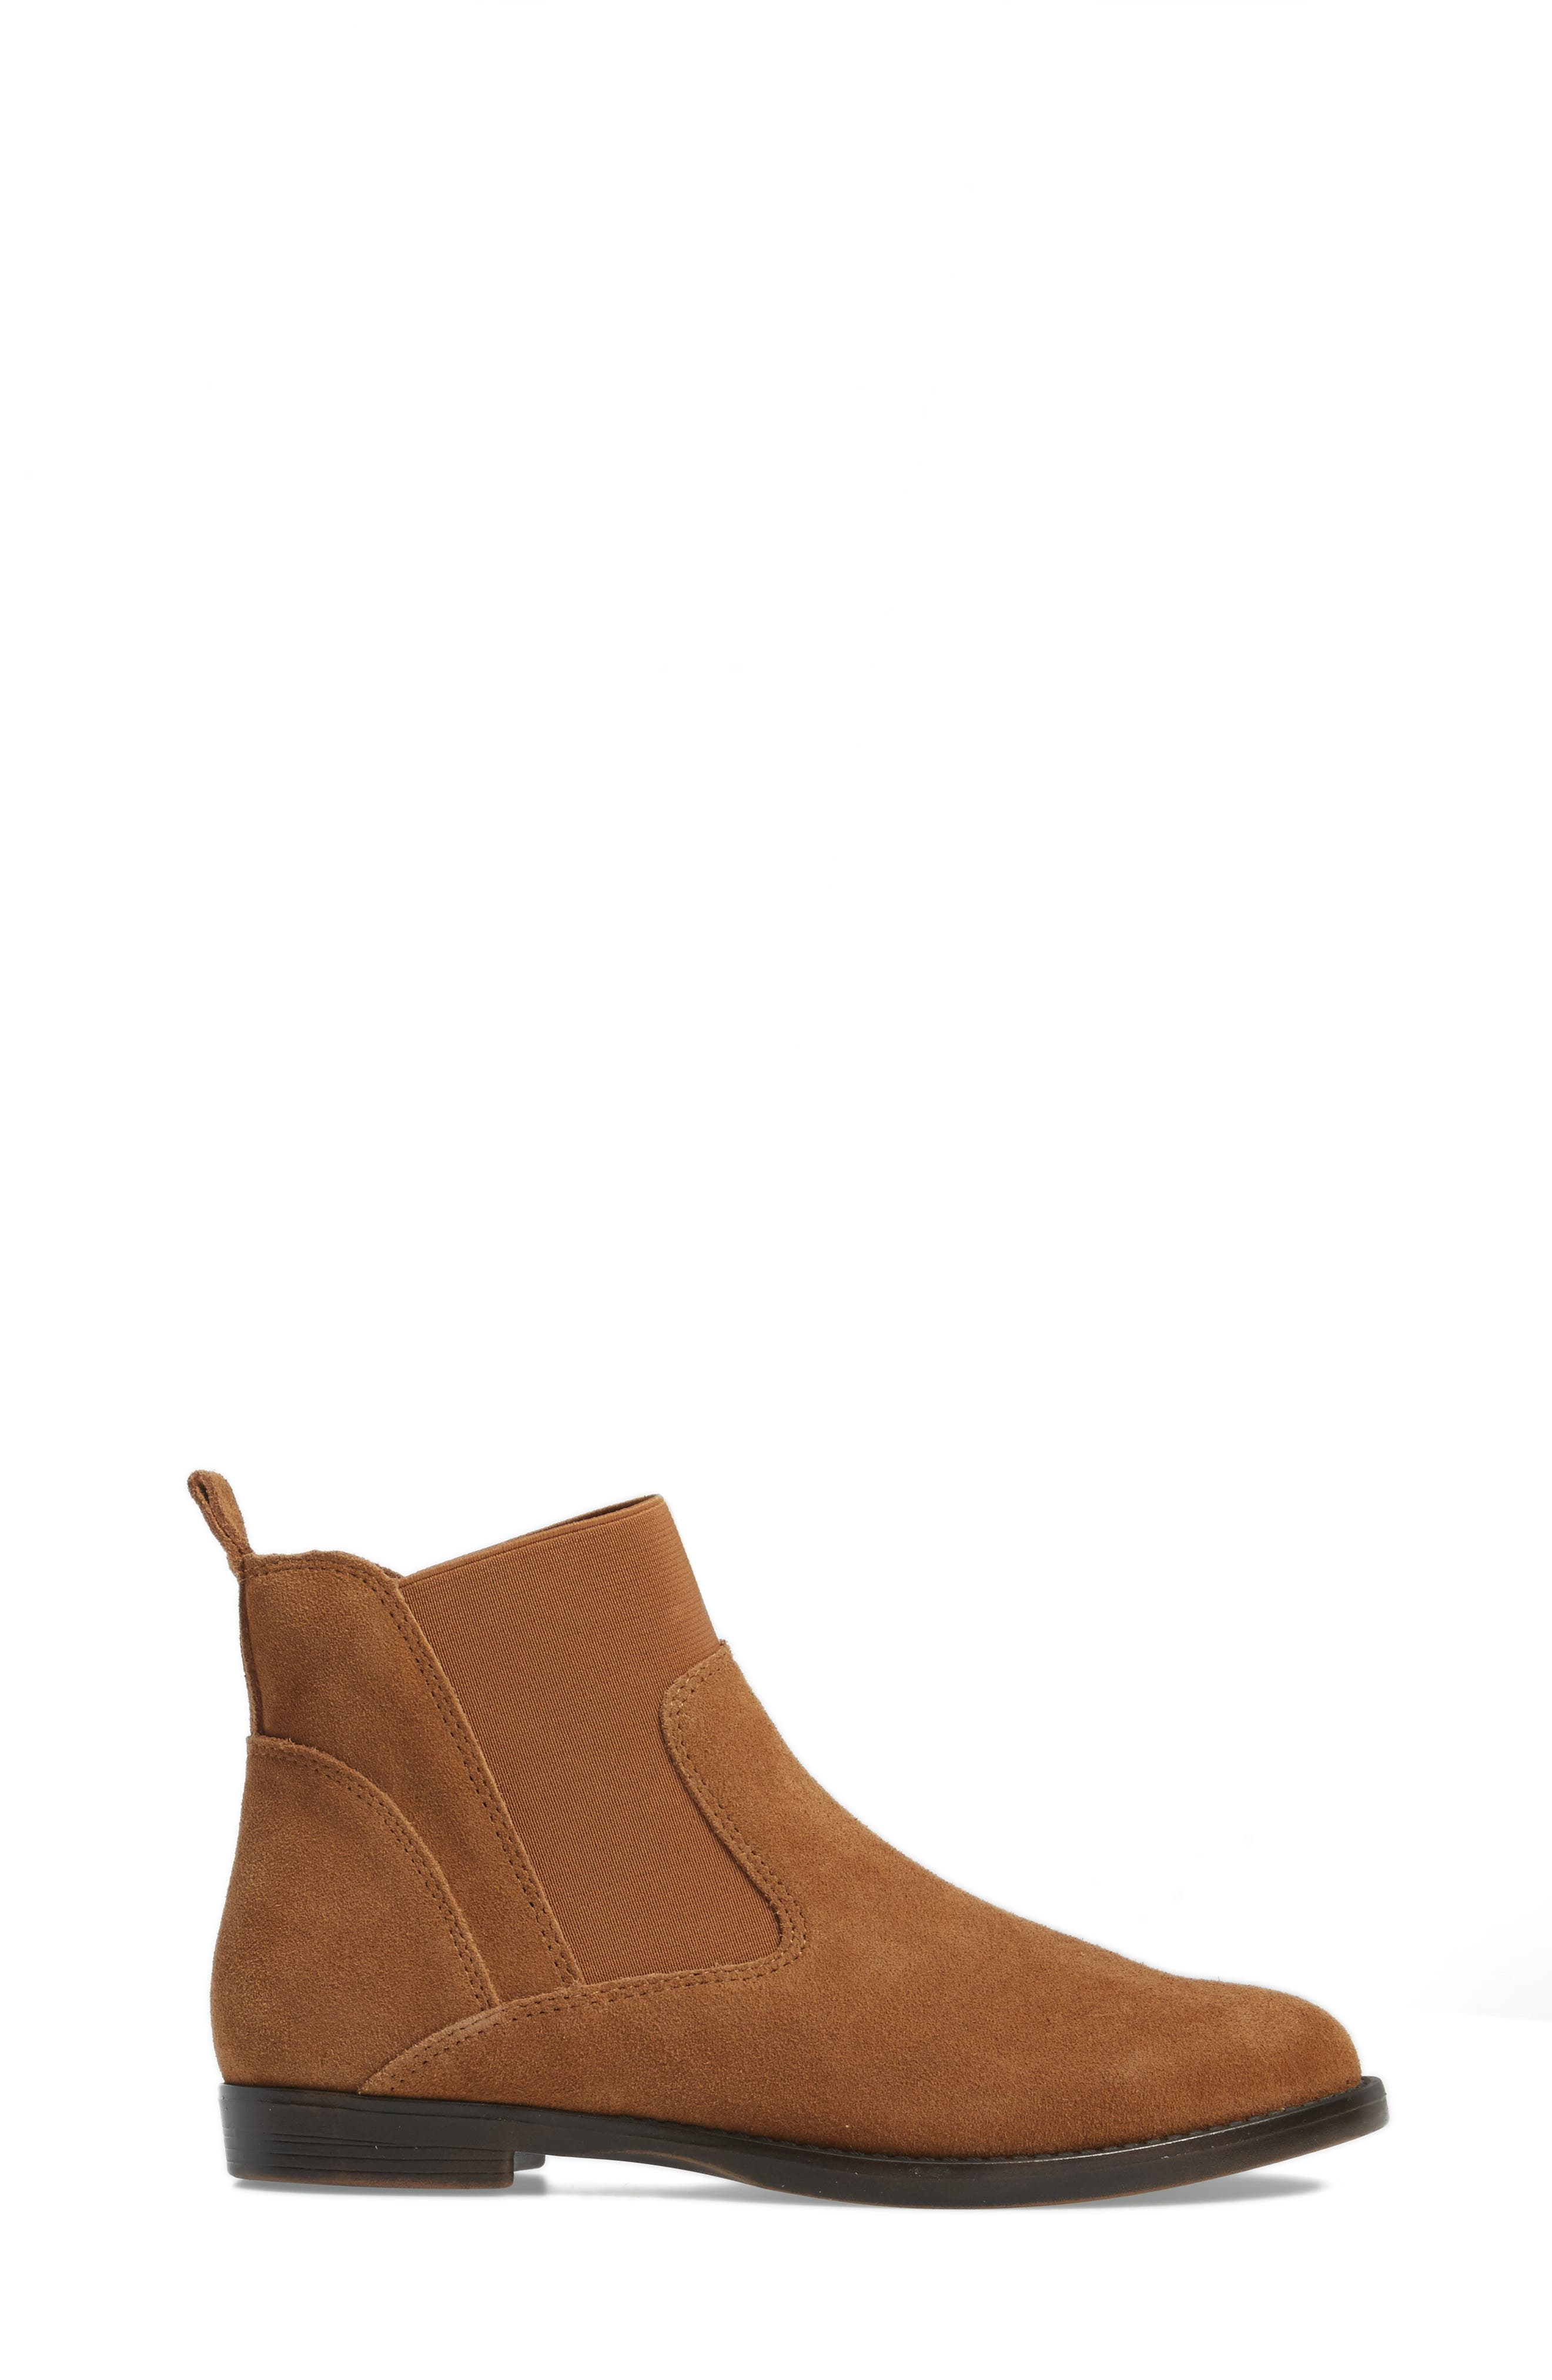 Rayna Chelsea Boot,                             Alternate thumbnail 3, color,                             Tan Suede